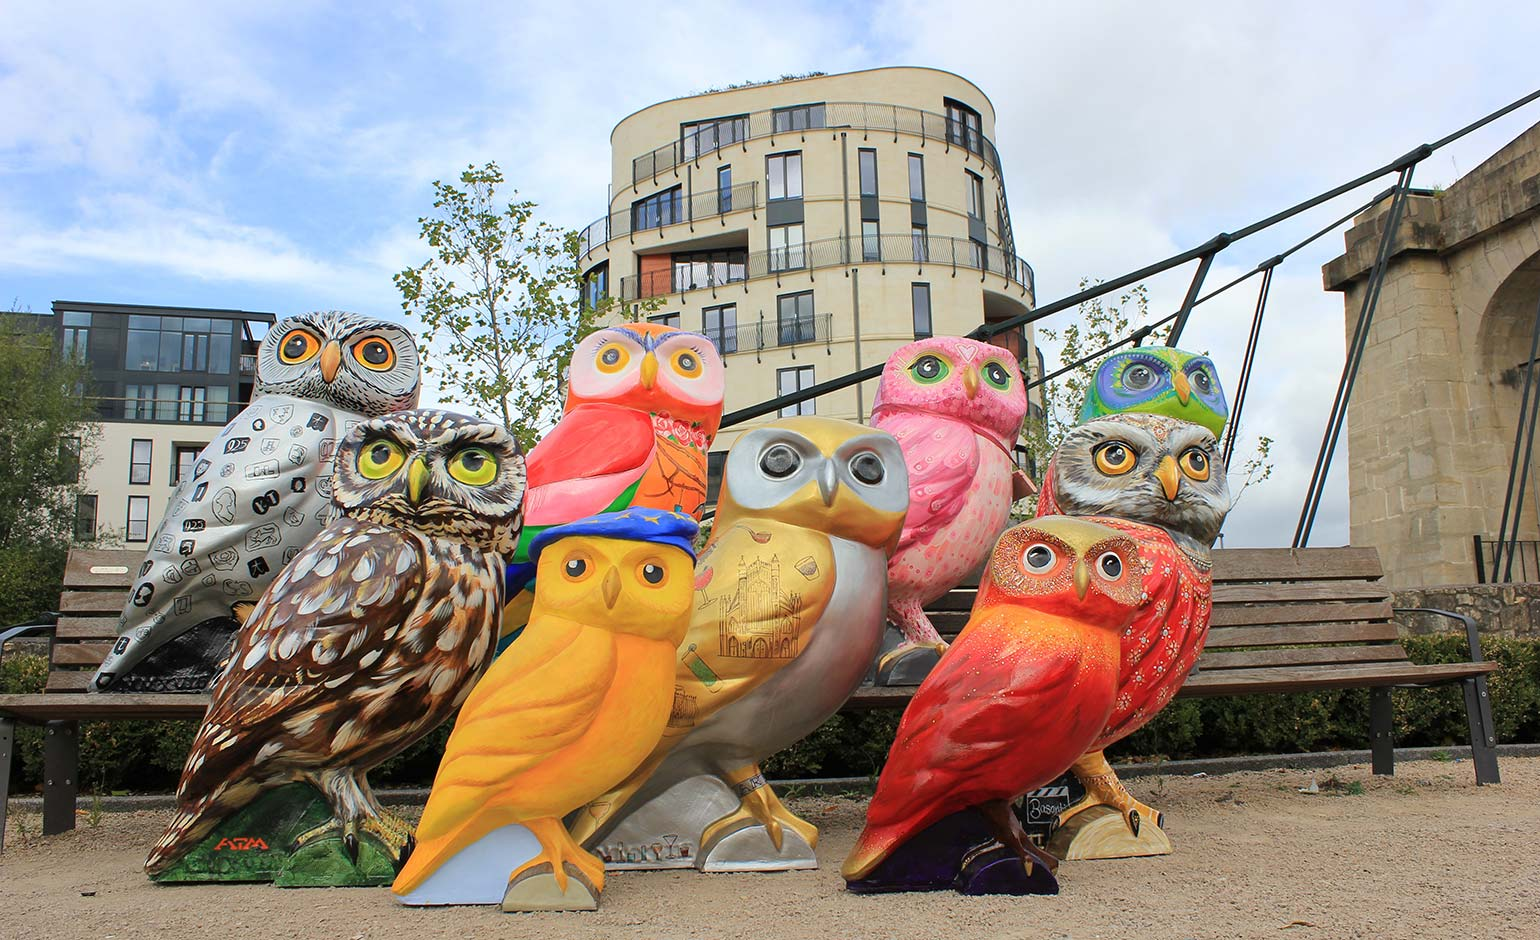 Royal View for Minerva's Owls in Bath ahead of charity auction next month